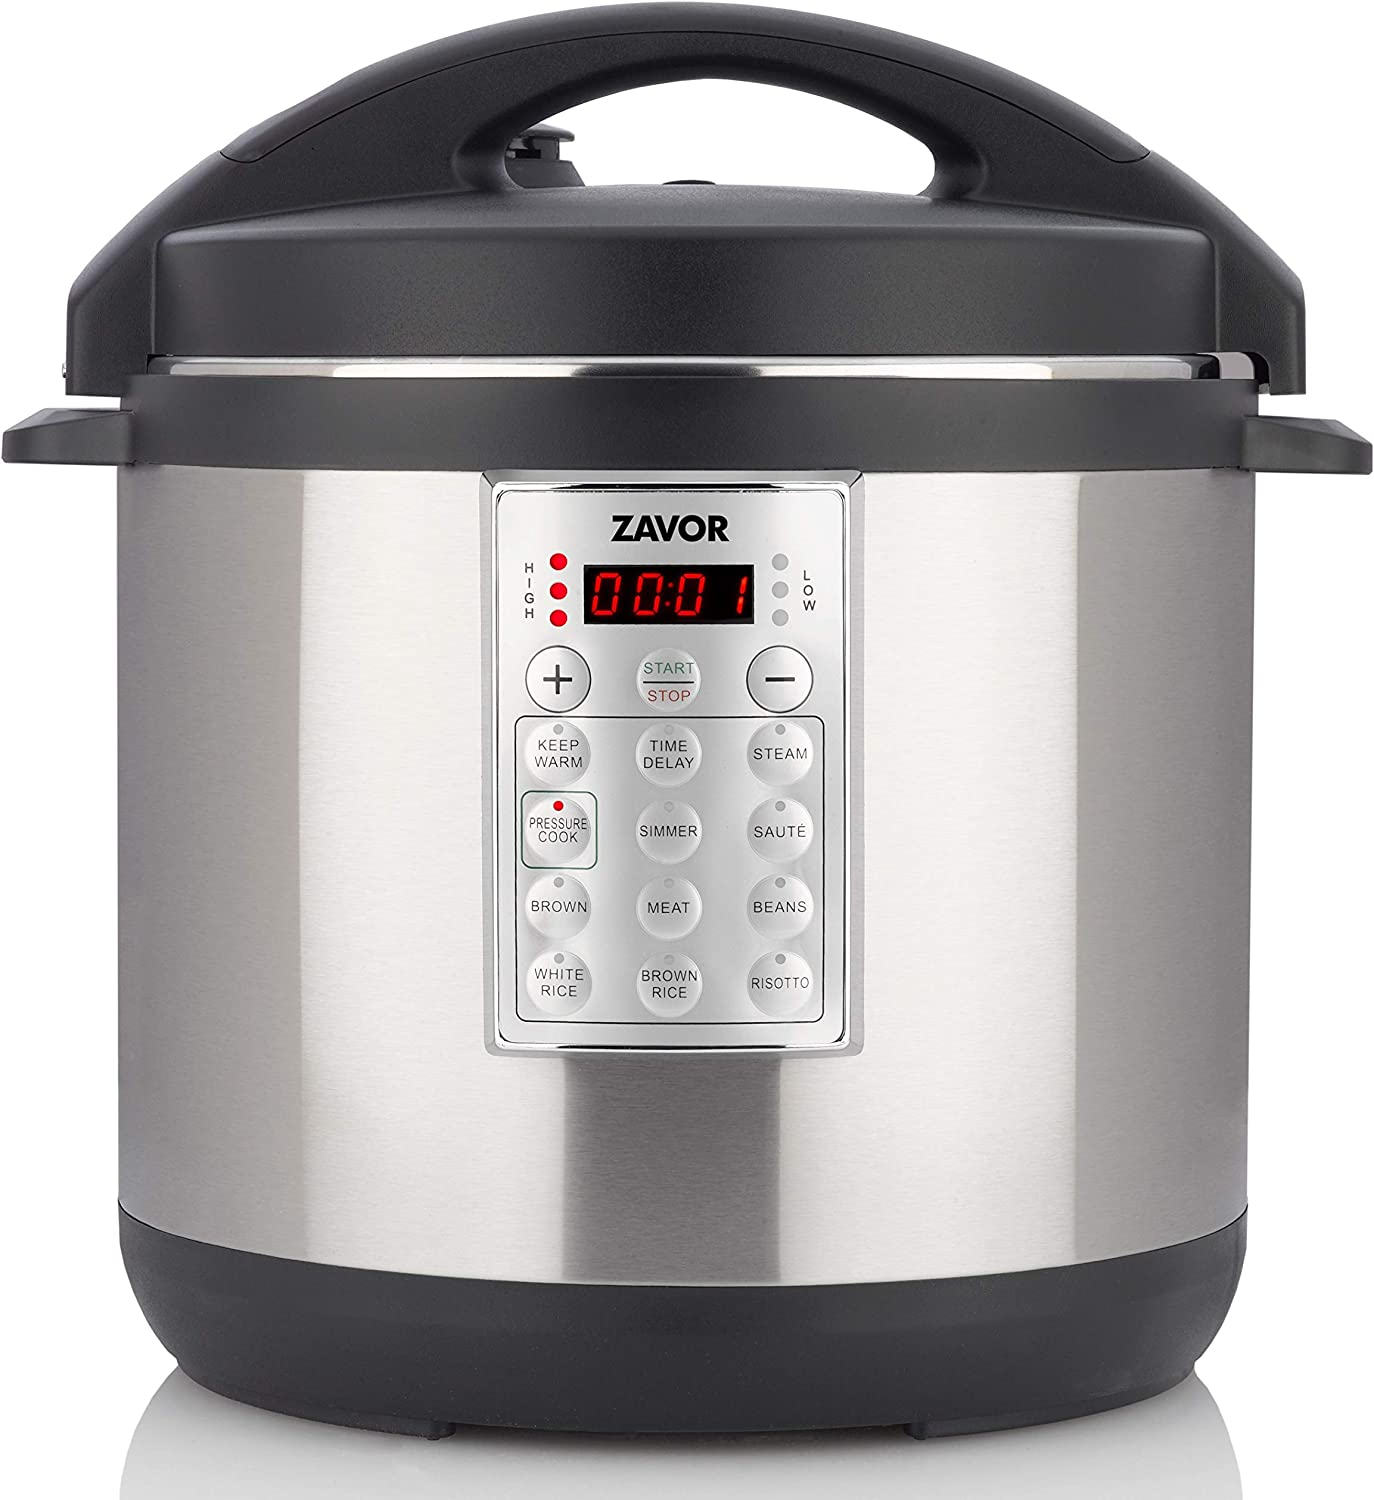 Zavor Select 8 Quart Electric Pressure Cooker and Rice Cooker with Non-stick Inner Cooking Pot and Brushed Stainless Steel Finish (ZSESE02)